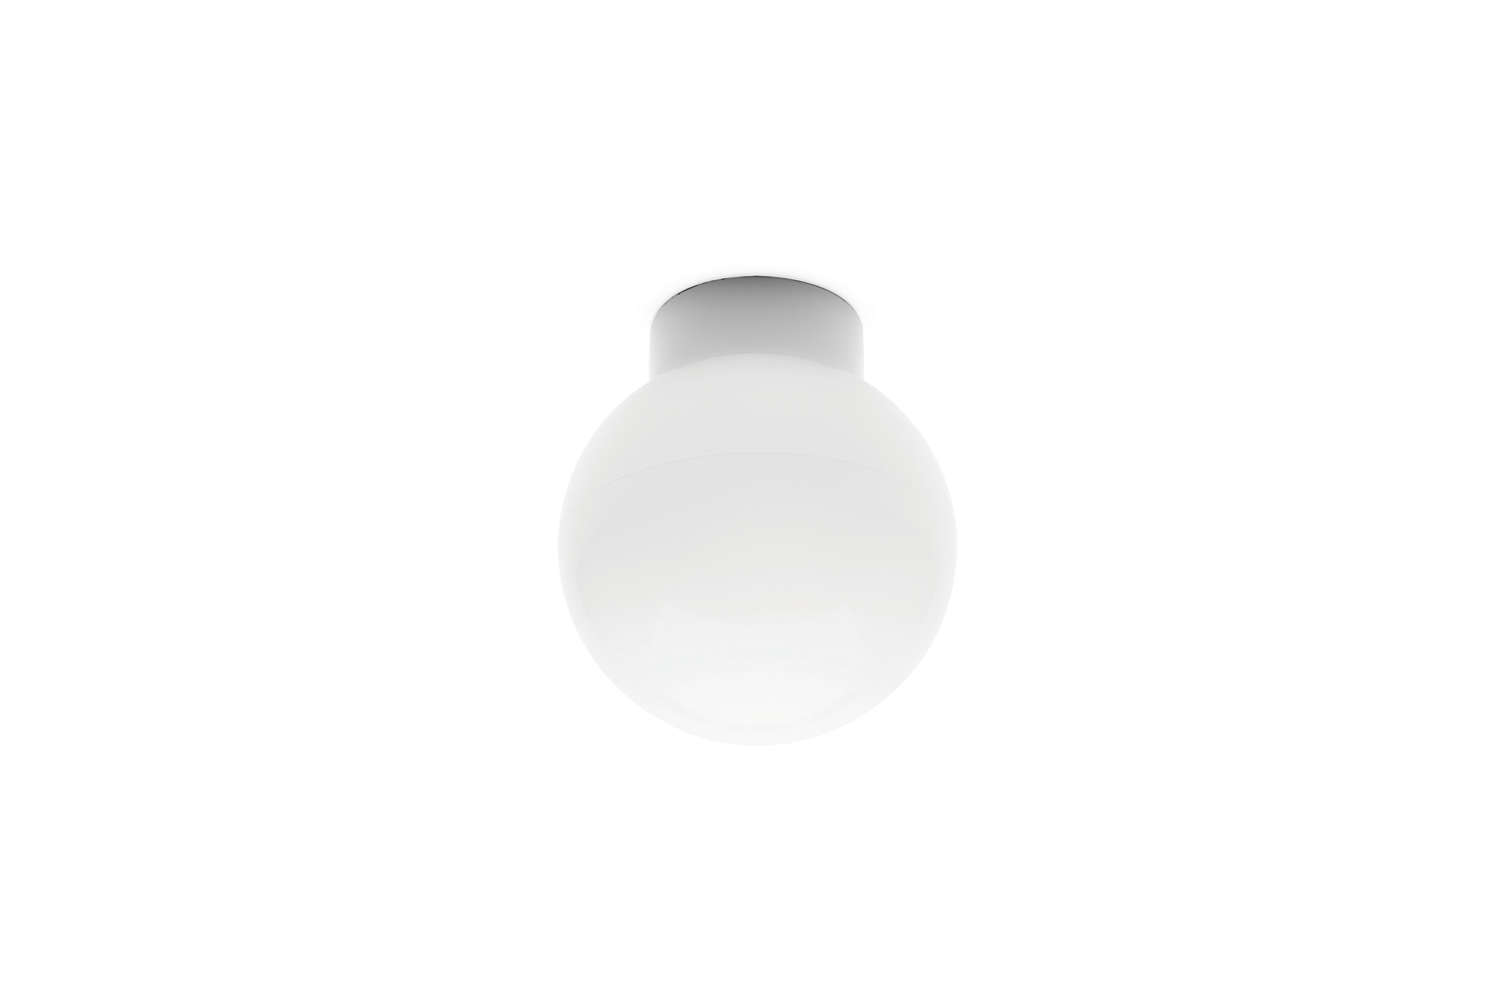 From German shop Manufactum, the Ceiling Lamp Made of Porcelain and Opaline Glass is €4loading=